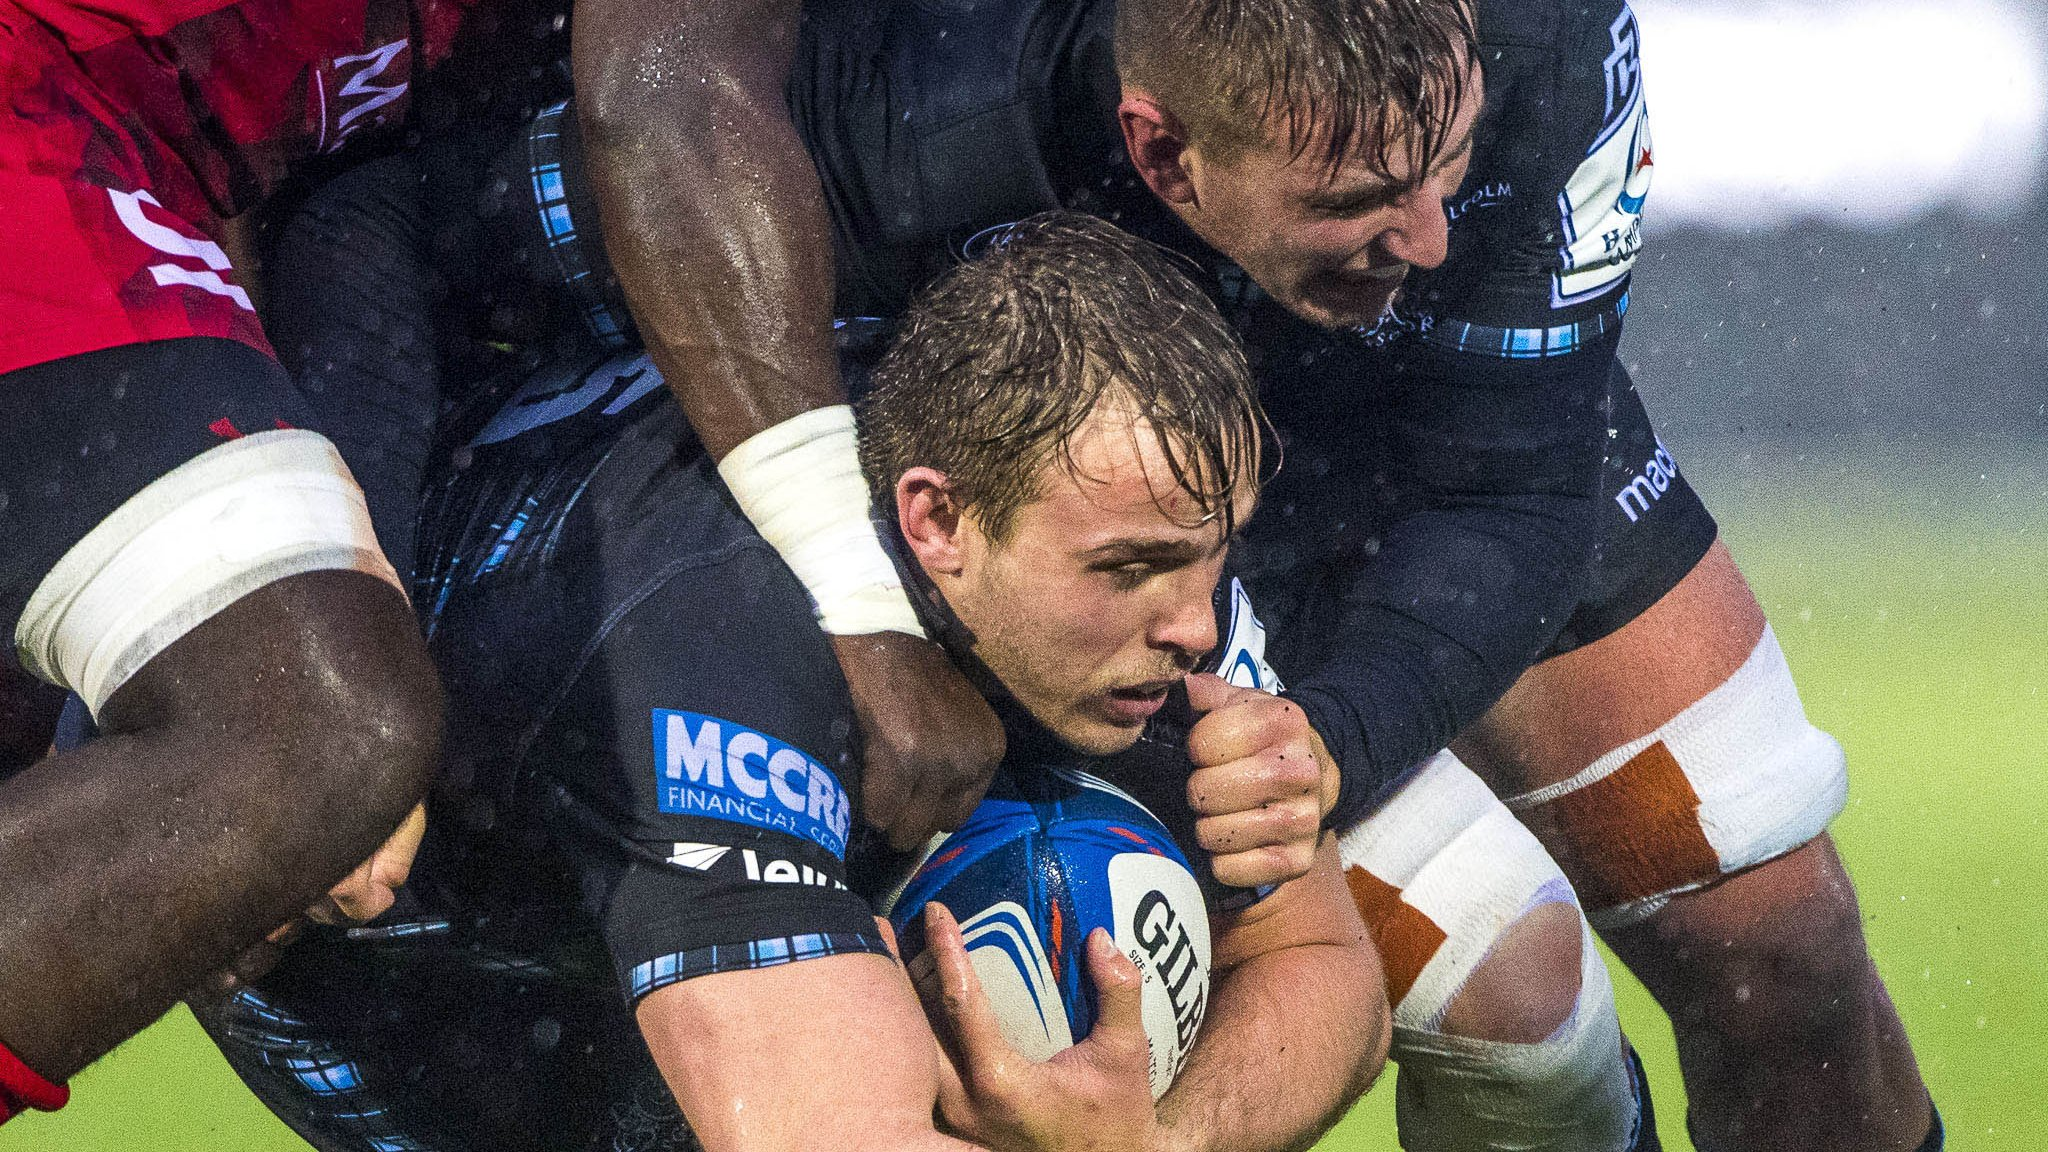 Glasgow Warriors' Ali Price: 'Glaswegians want to see a bit of fight in the players'